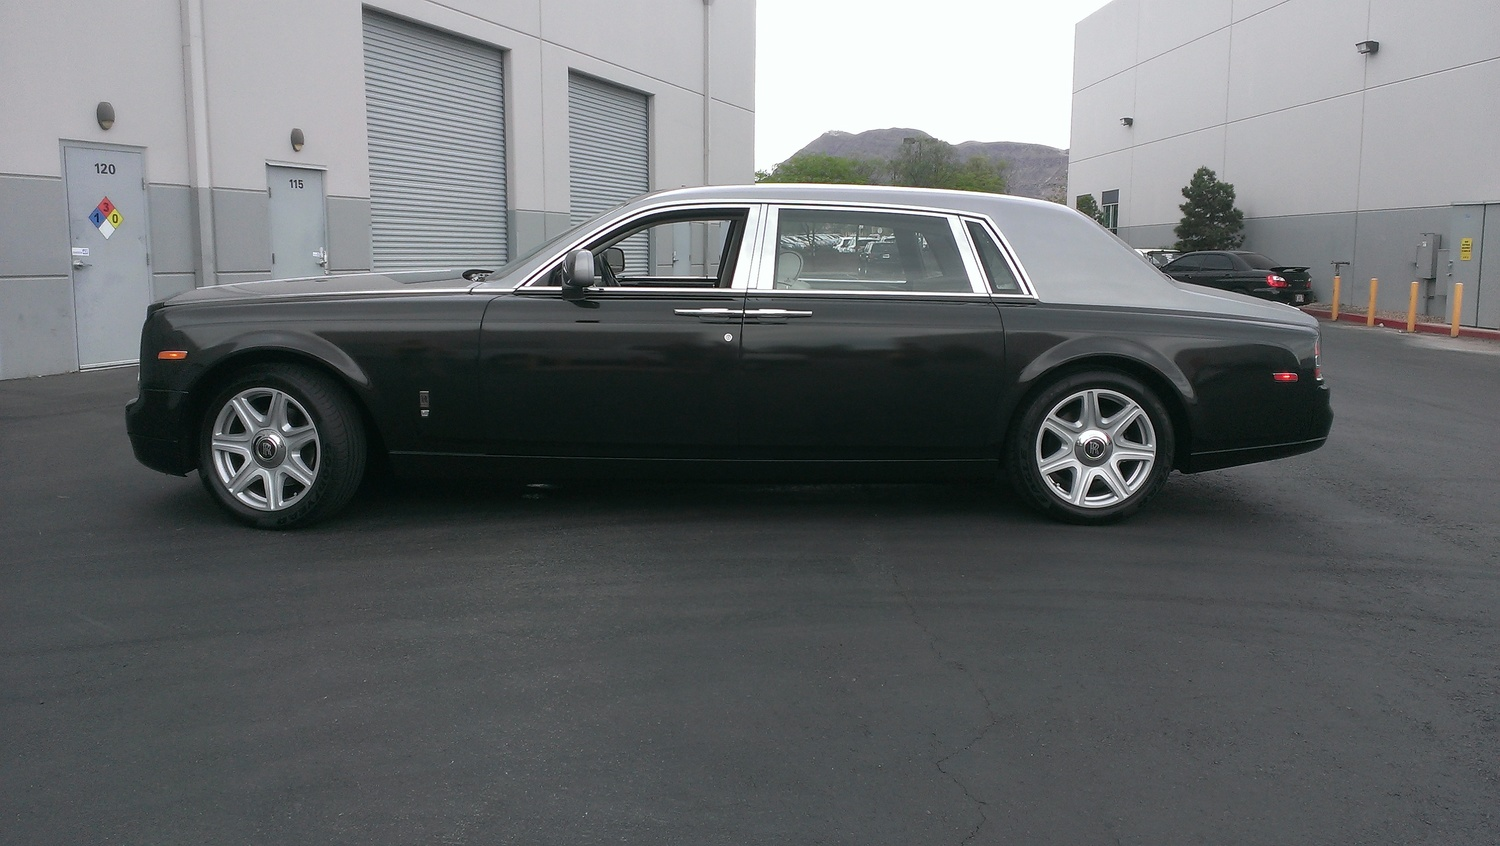 rolls royce phantom white with black rims. so if you lease a high end vehicle but want to stand out wraps are the only way go peel it off when is up and itu0027s good as new rolls royce phantom white with black rims